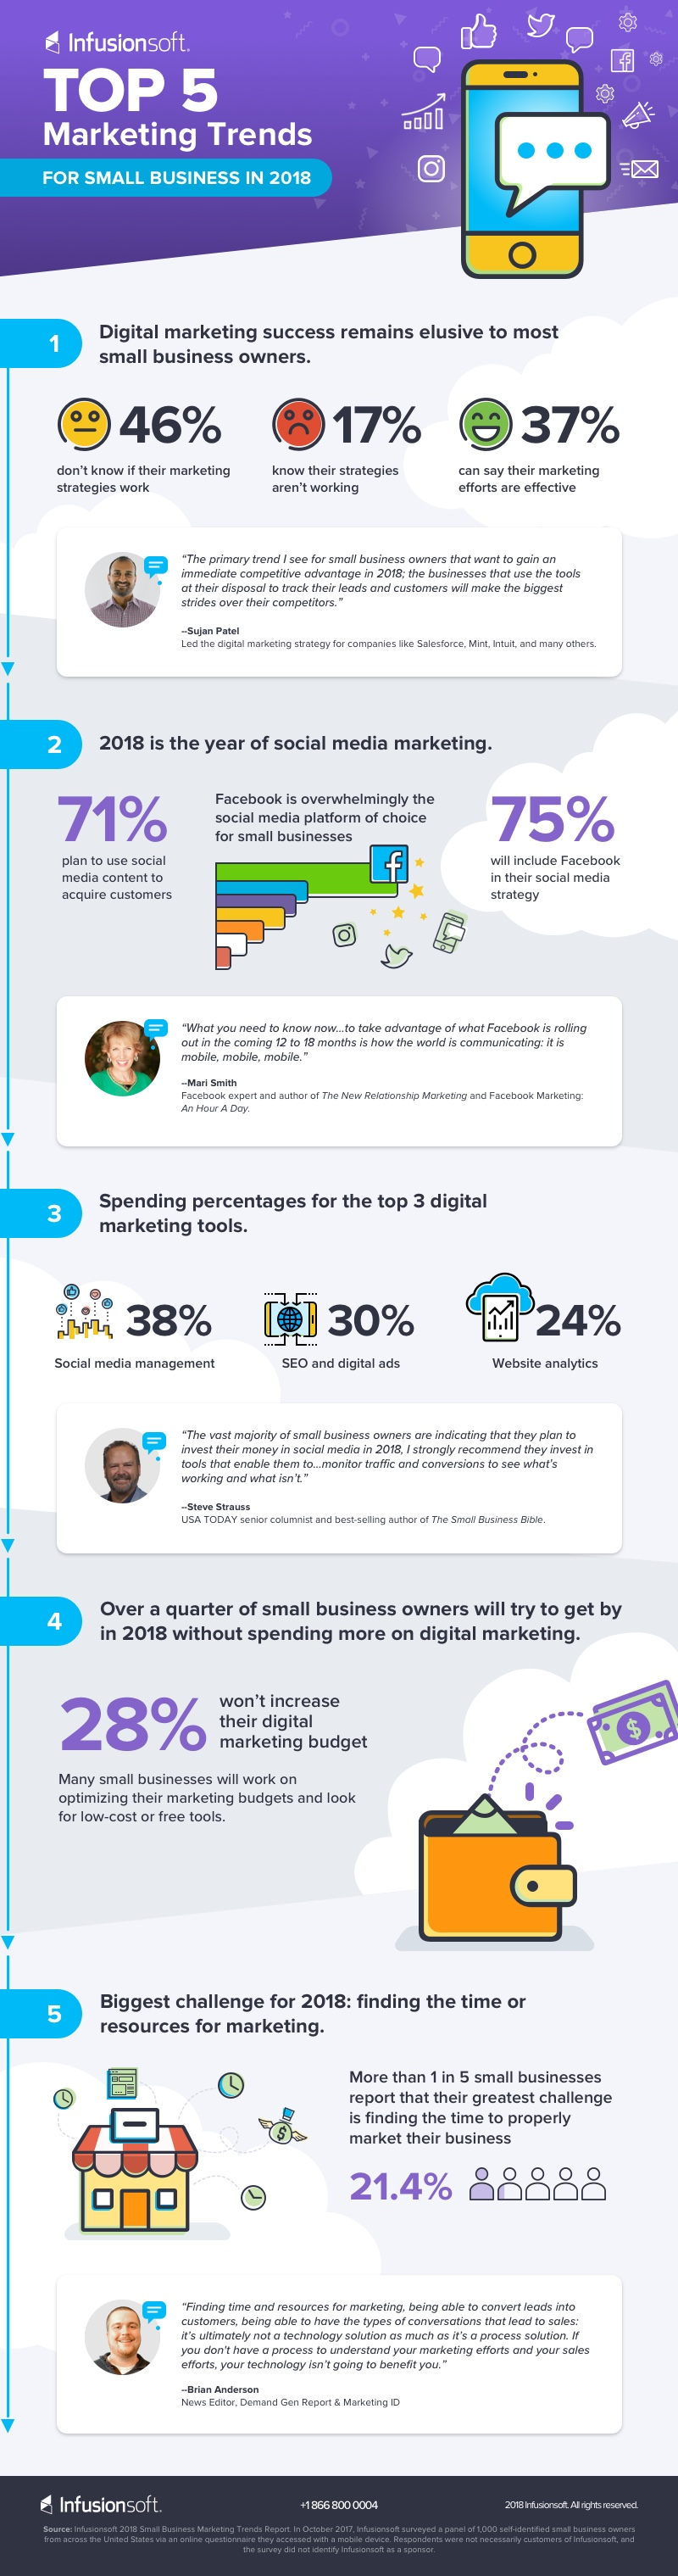 Marketing Trends Report infographic